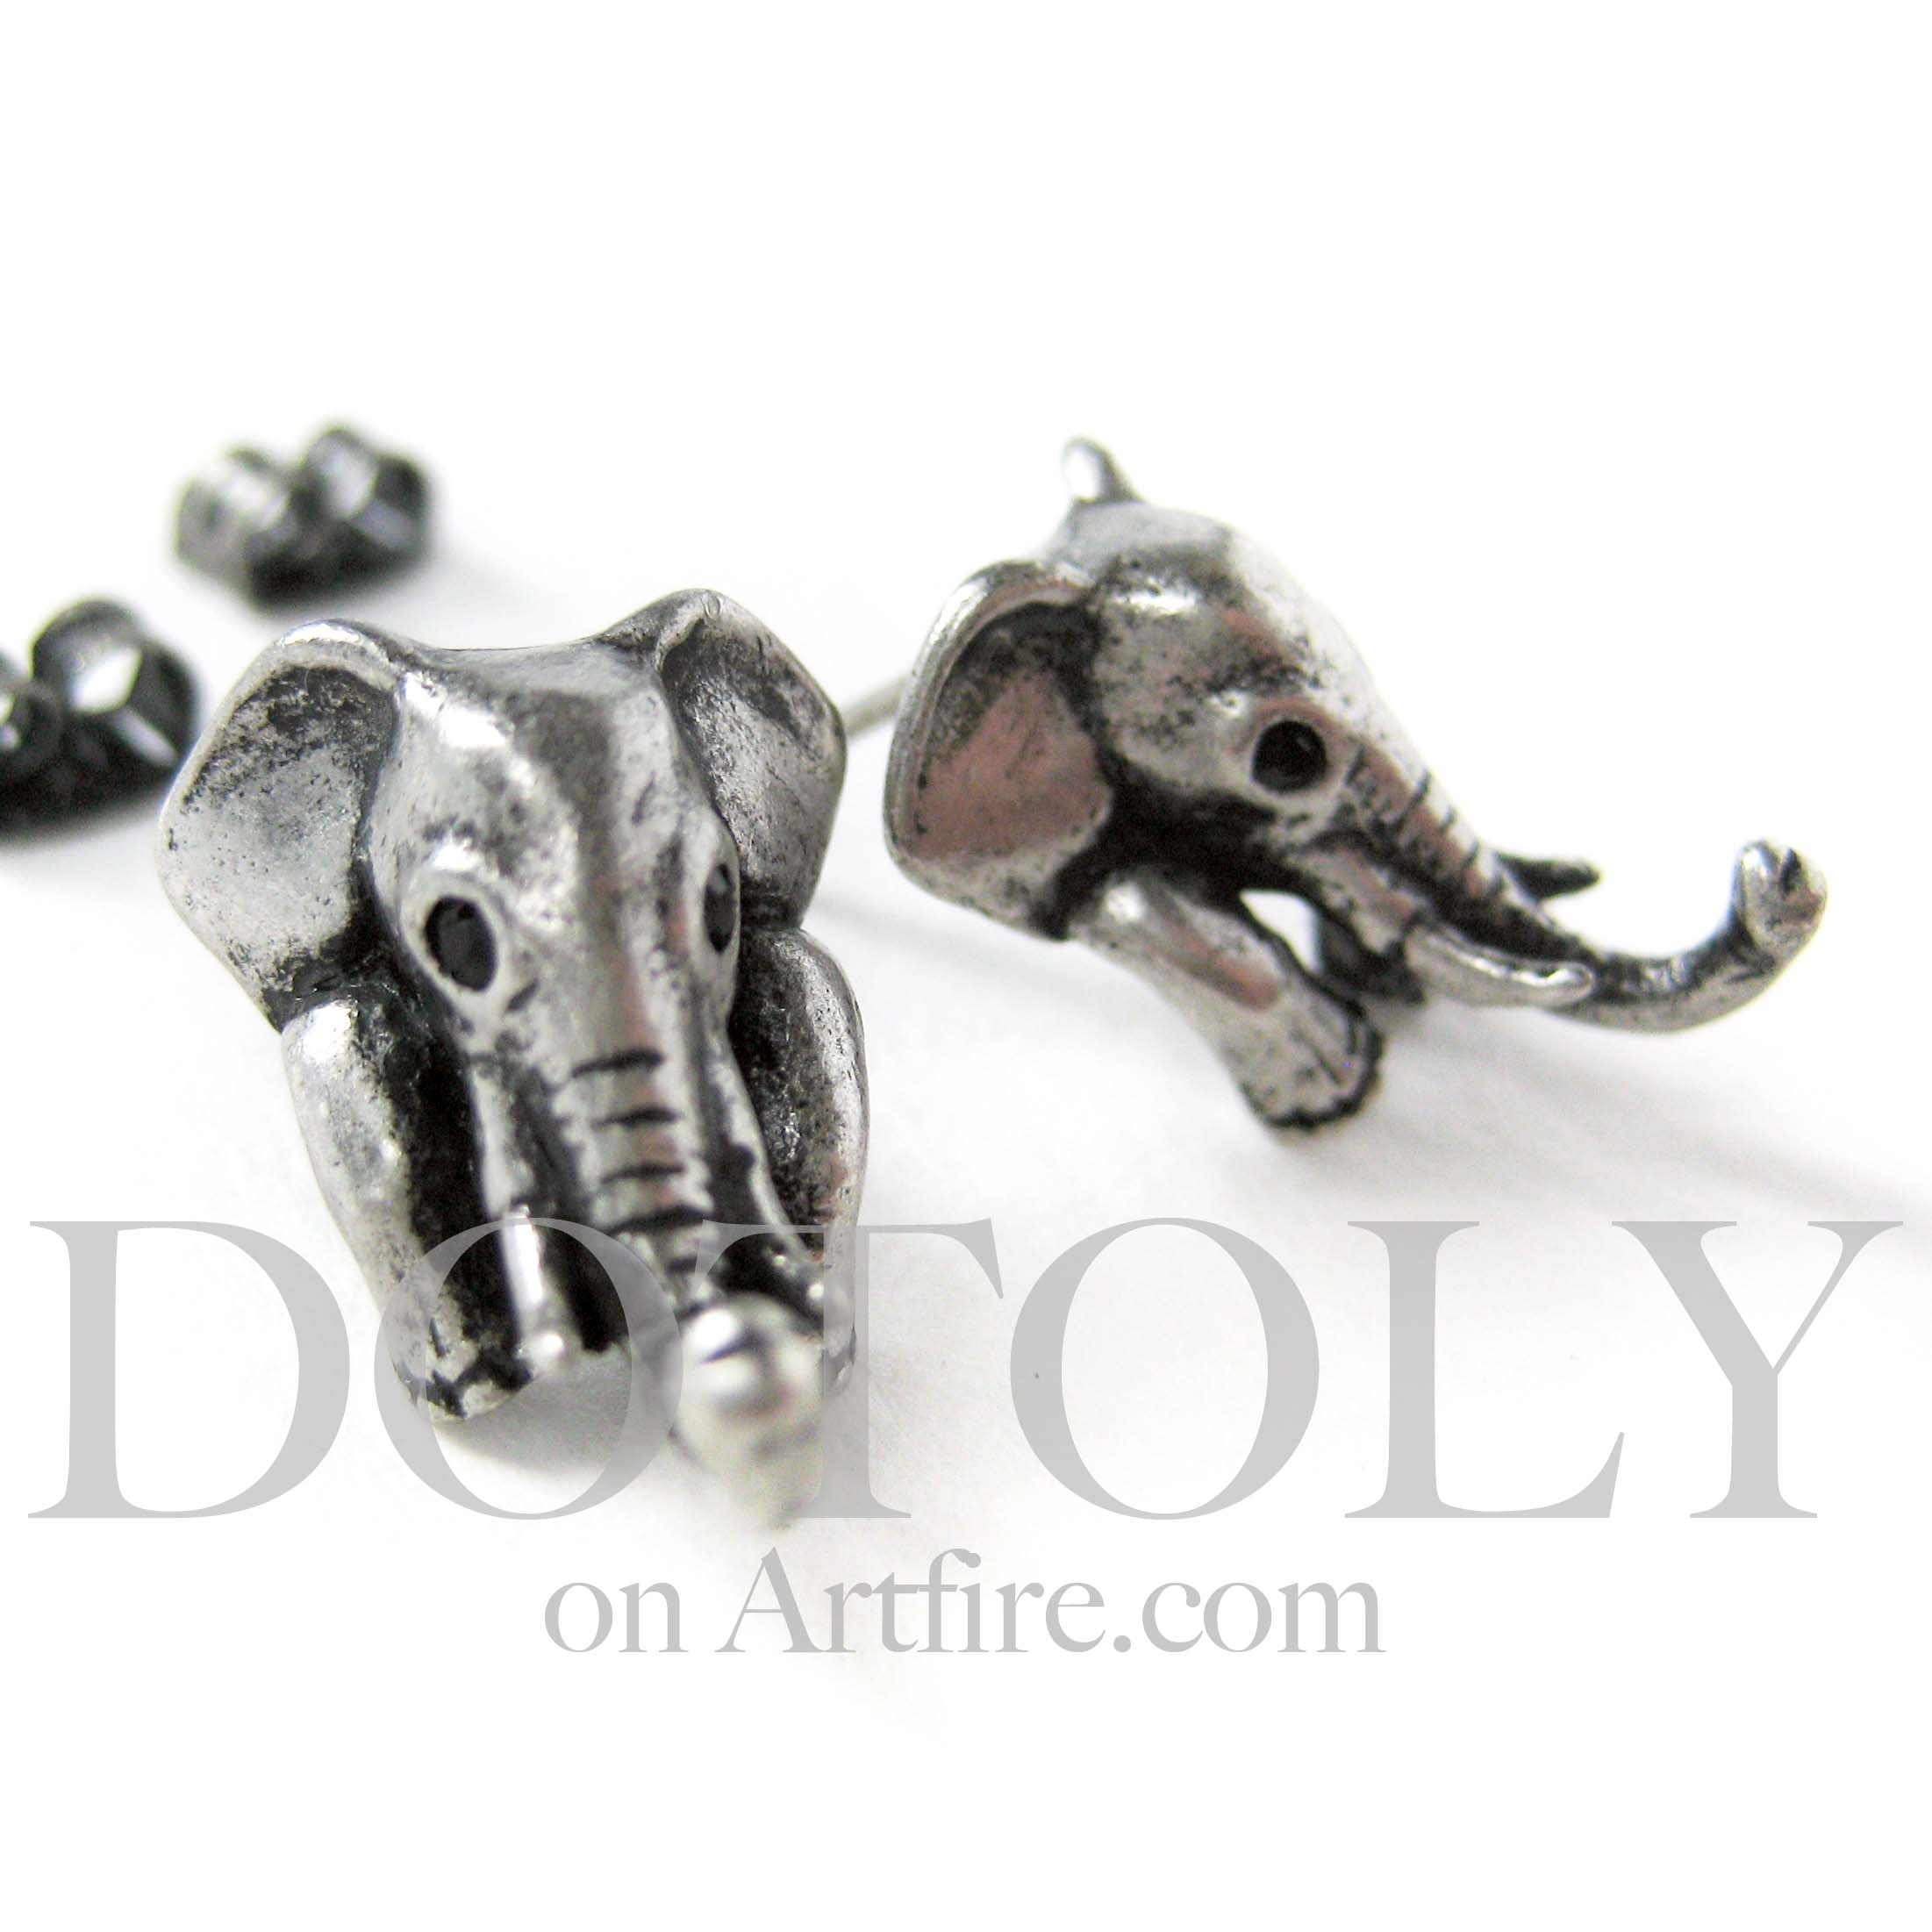 Elephant Earrings on Product   Miniature Elephant Earrings In Silver By Dotoly    Storenvy